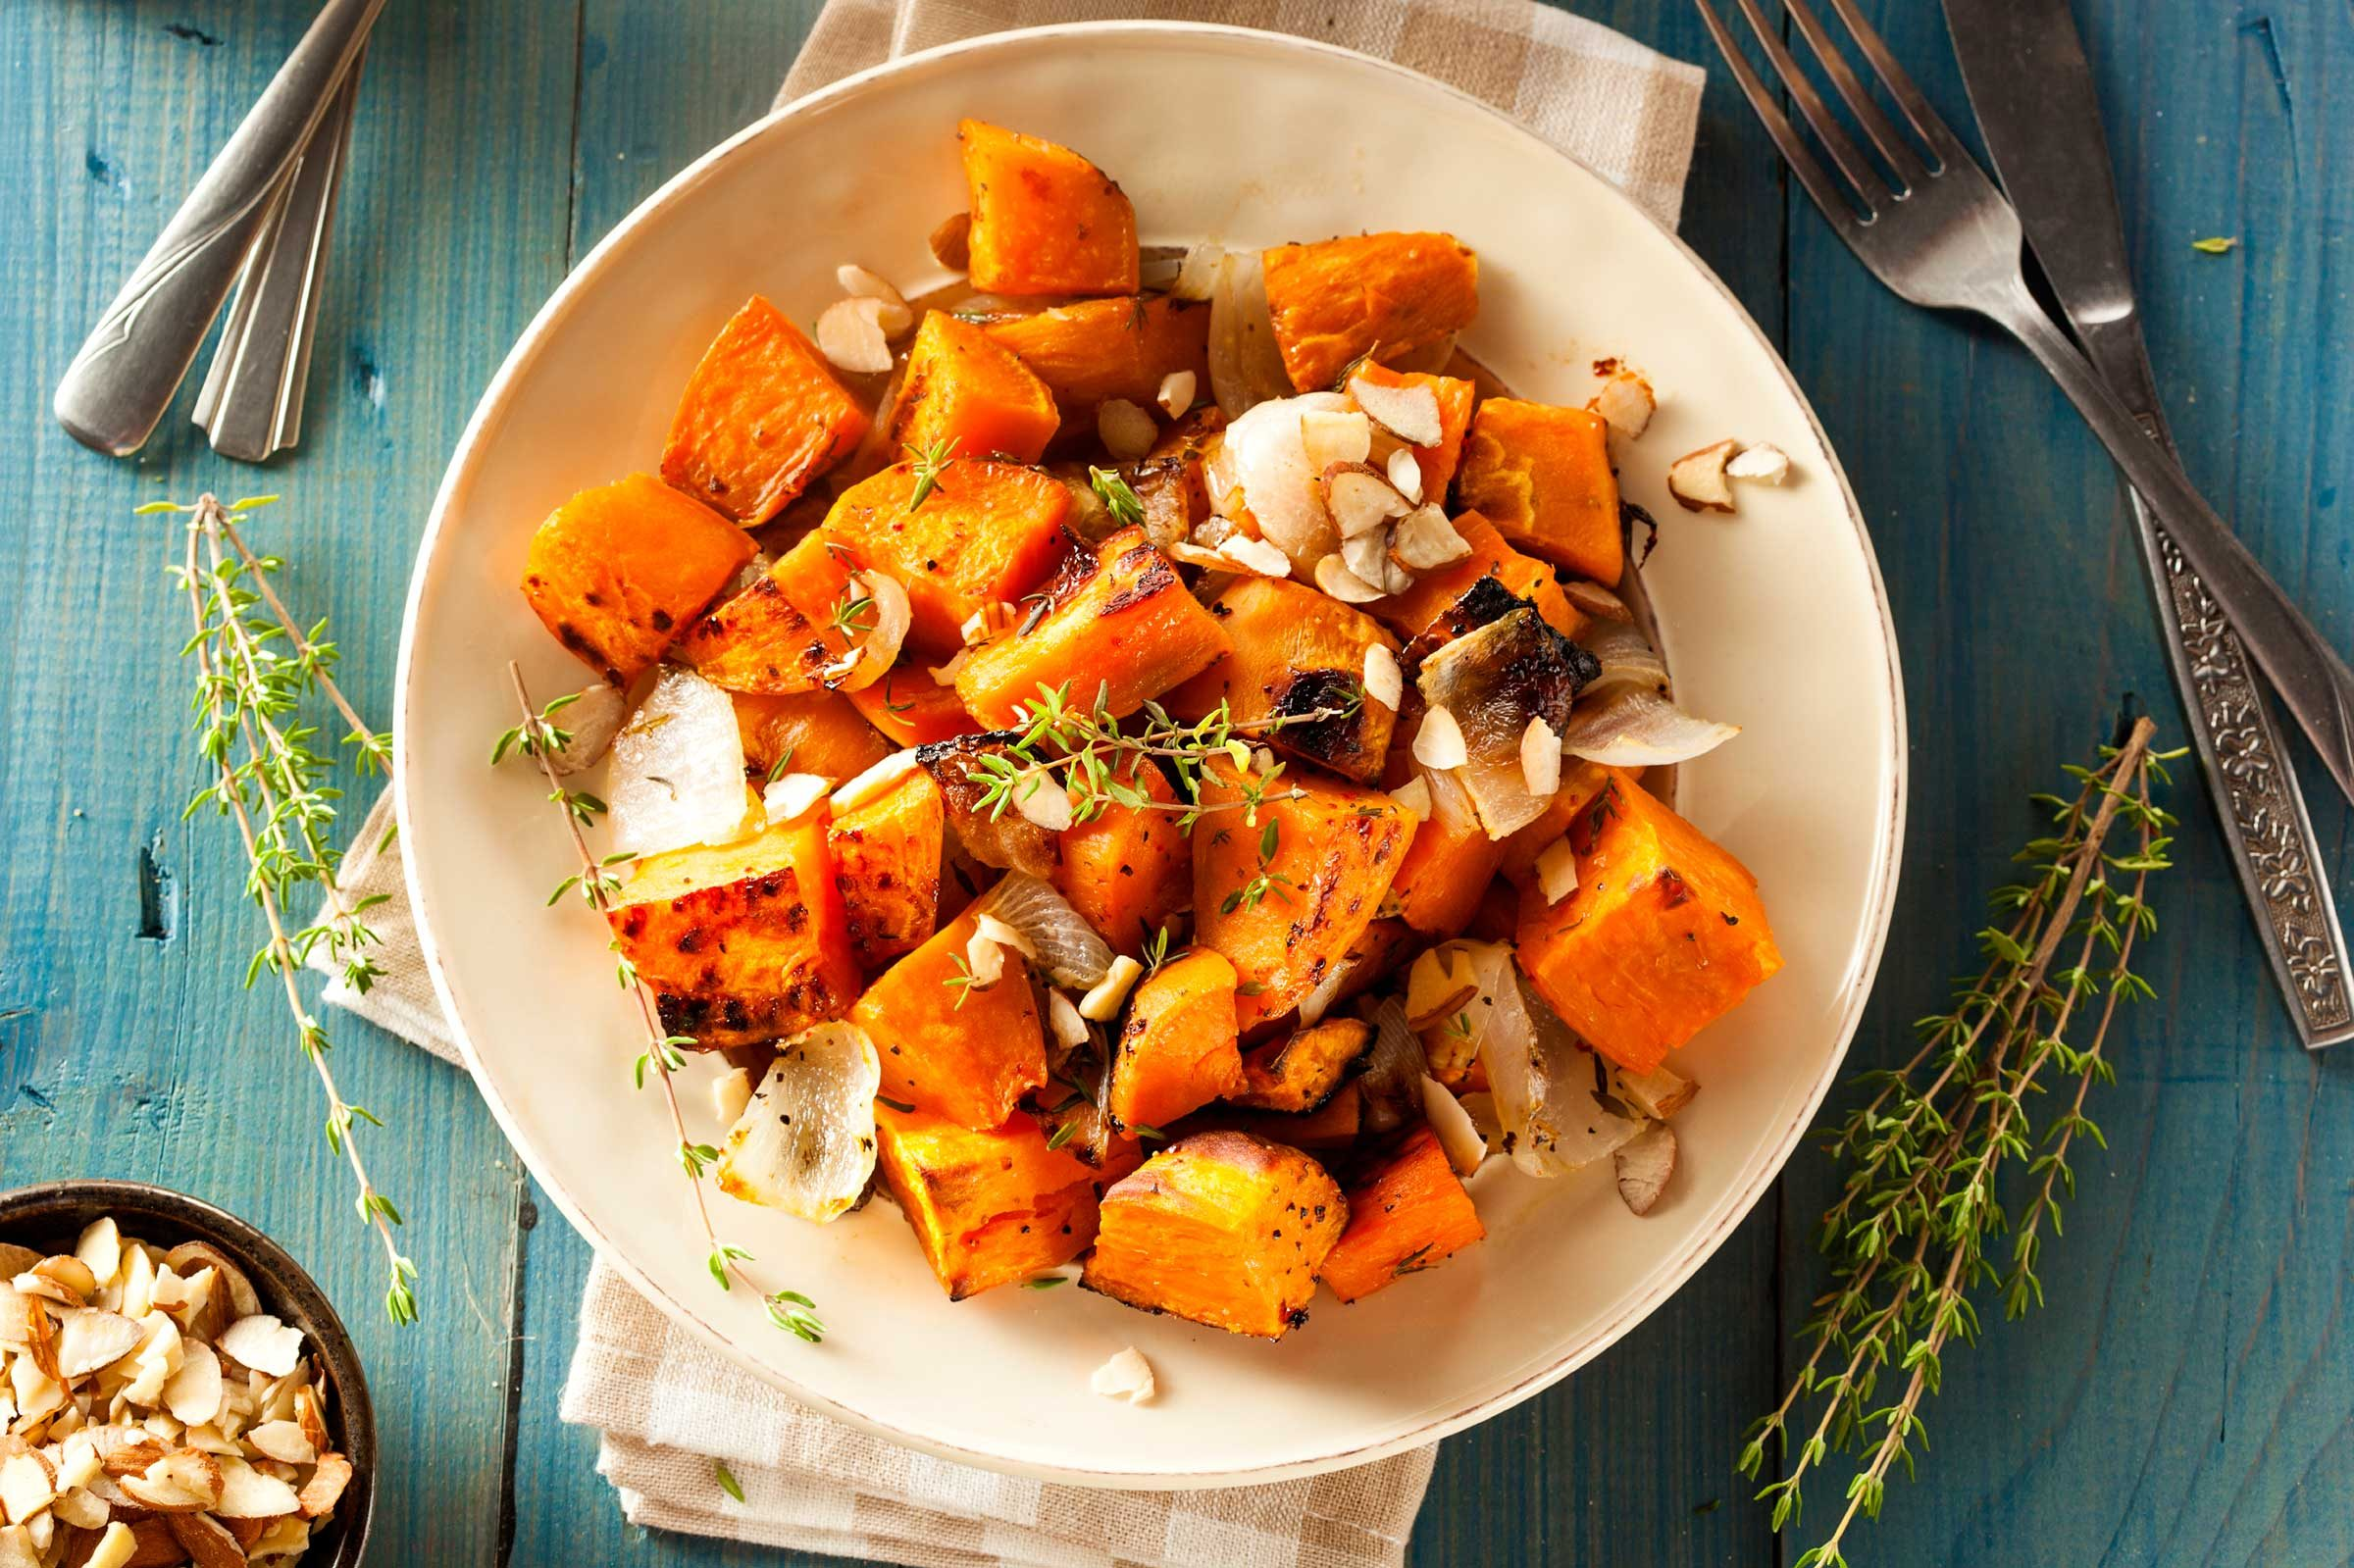 Diabetes diet plan how to make meals for diabetes readers digest replace white potatoes with sweet potatoes forumfinder Gallery